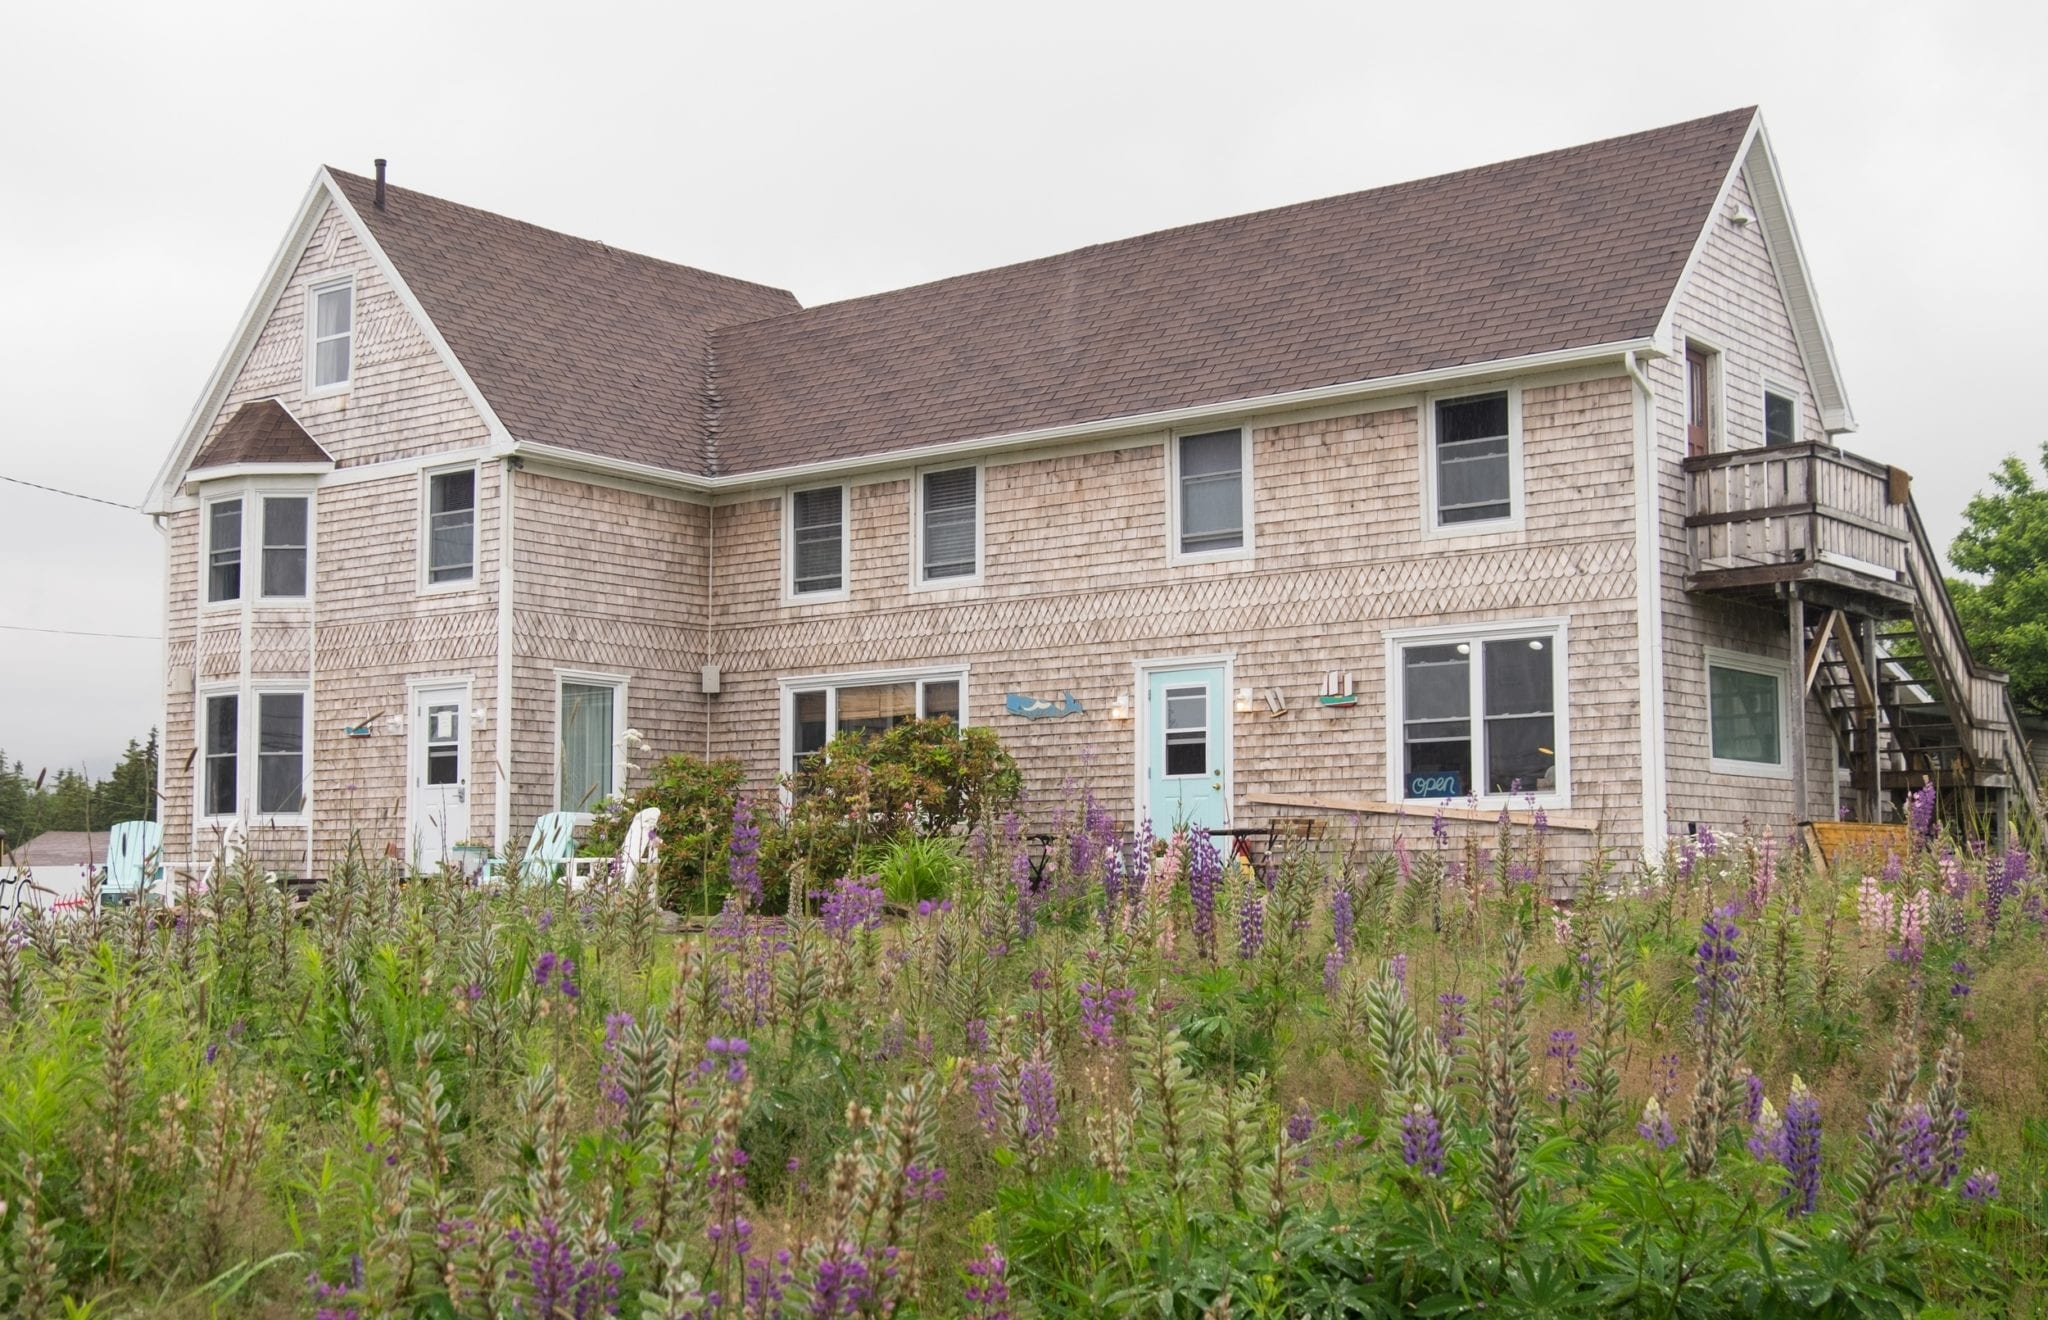 A Scottish-looking gray house in front of purple flowers in Cape Breton.